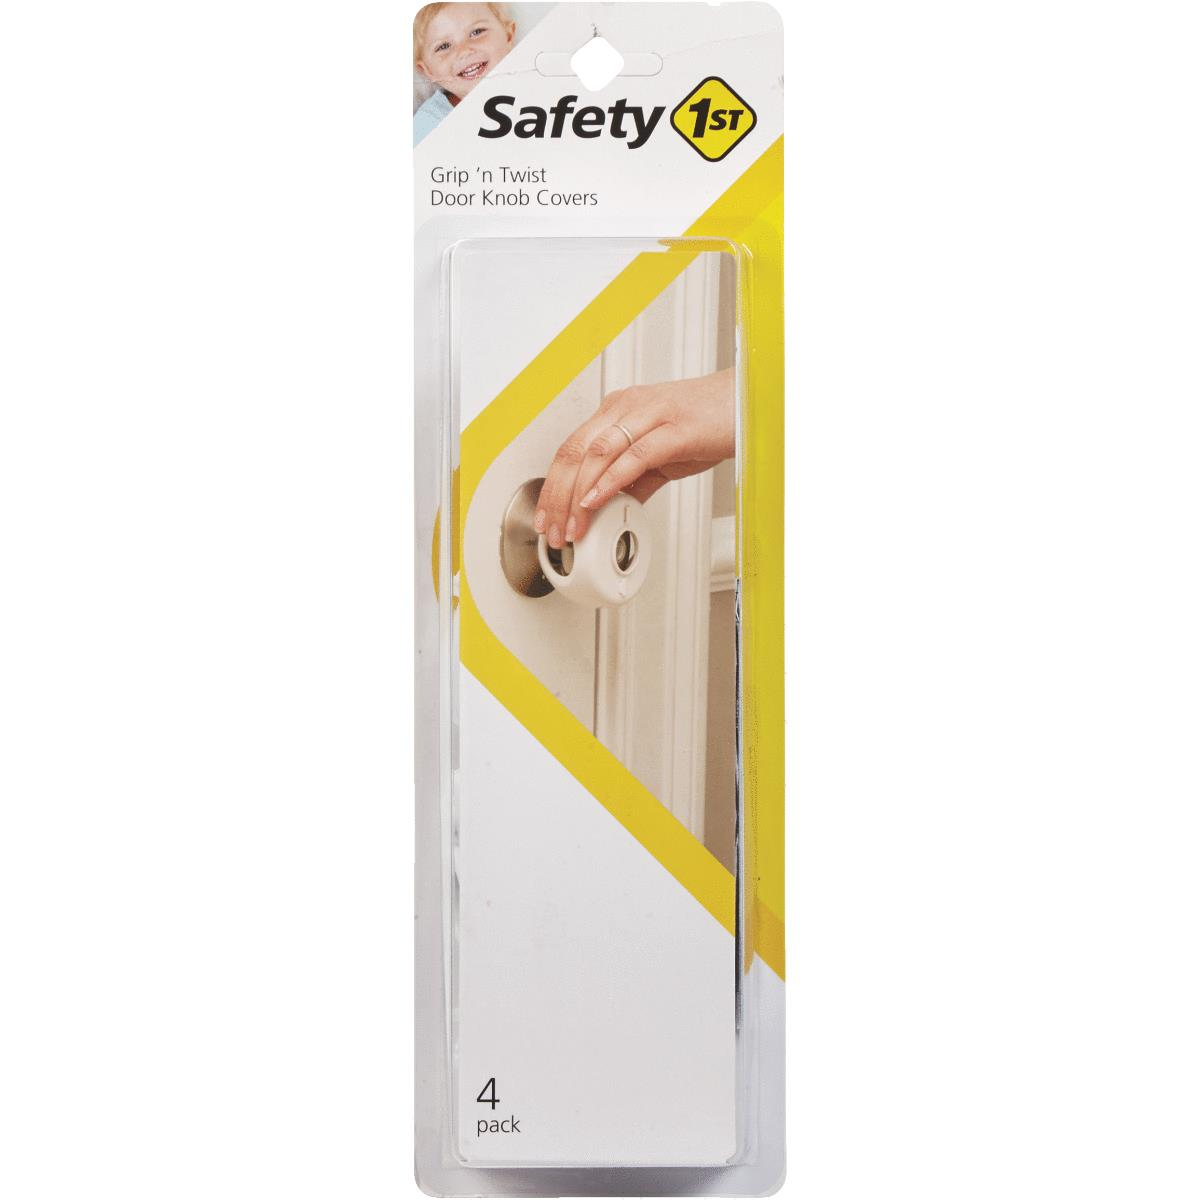 Safety 1st grip and twist door knob cover 4pack